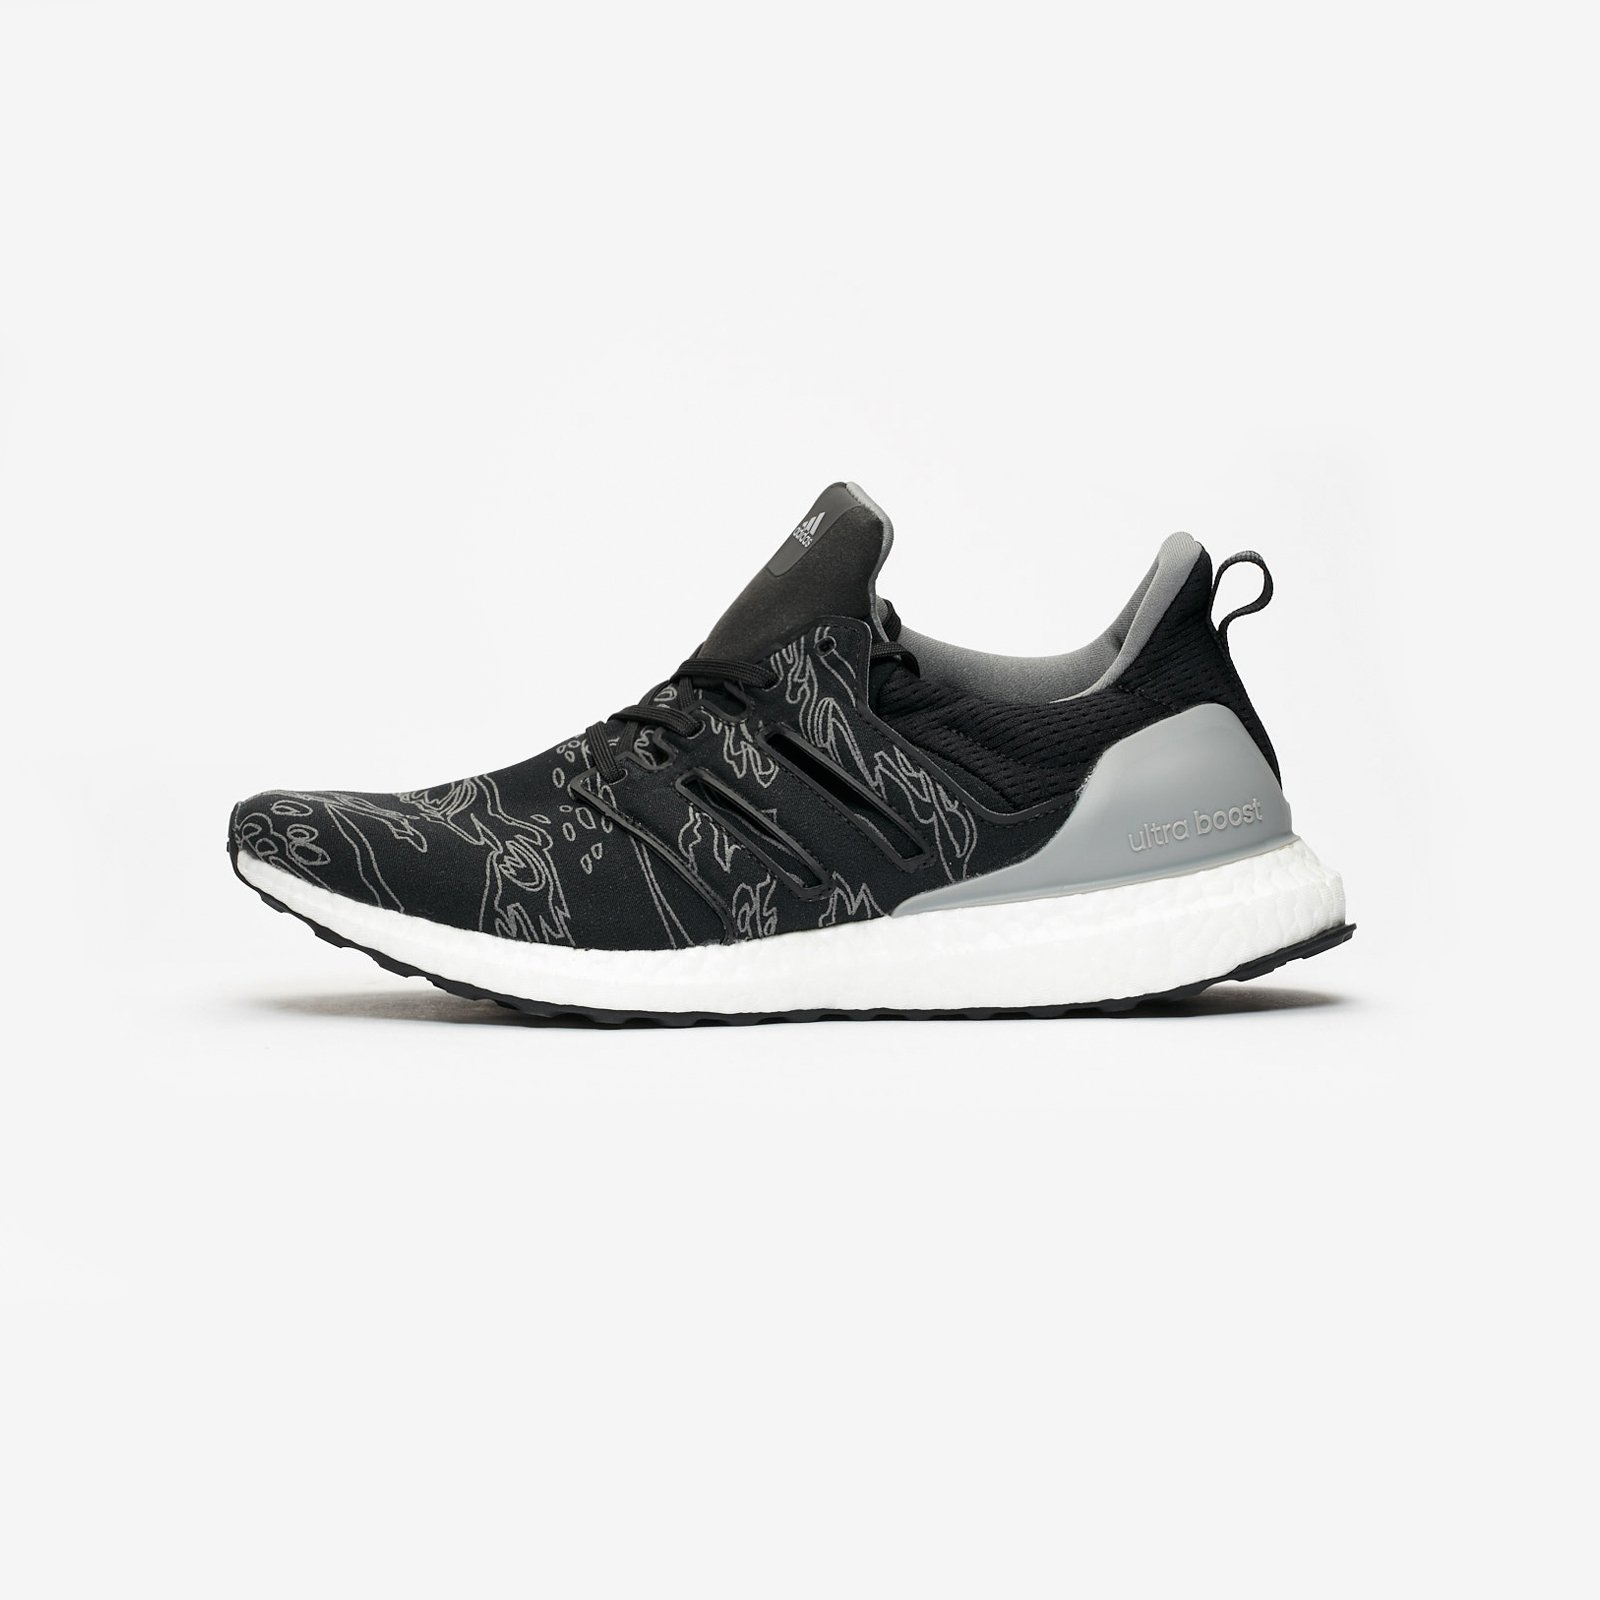 9ea0a9a7bfd689 adidas UltraBOOST x UNDFTD - Bc0472 - Sneakersnstuff